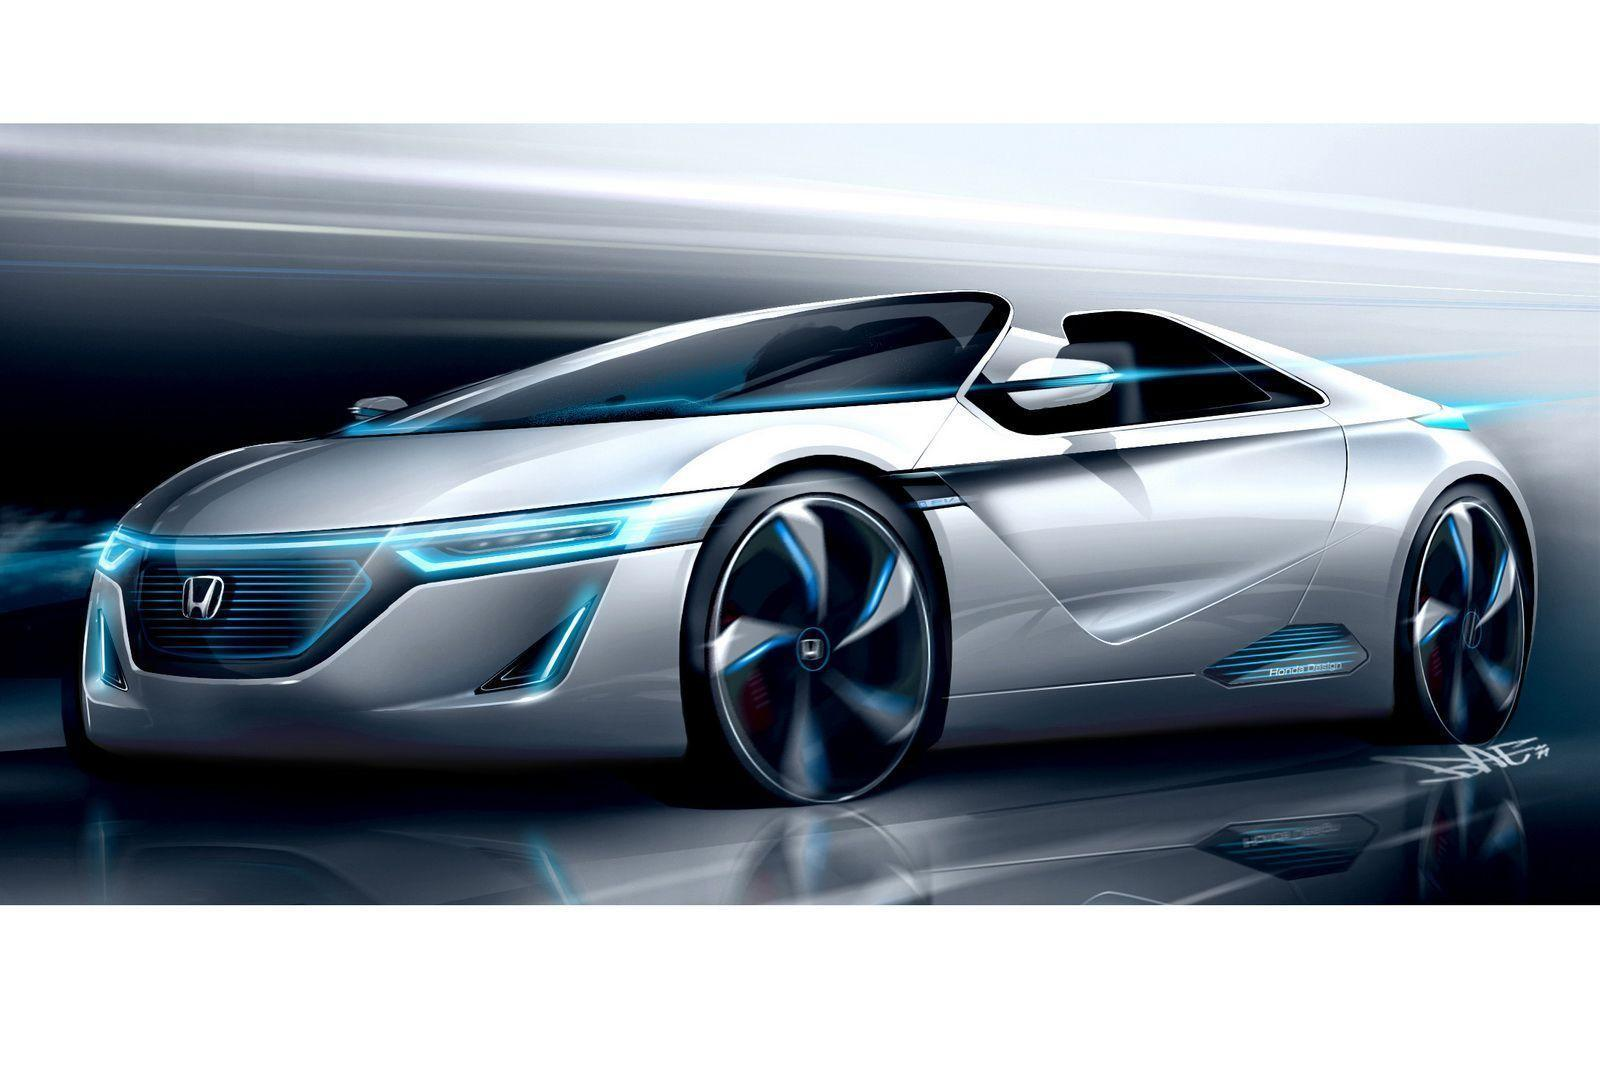 New Honda Concept Car Full Hd Wallpaper 1600x1067PX ~ Wallpaper ...